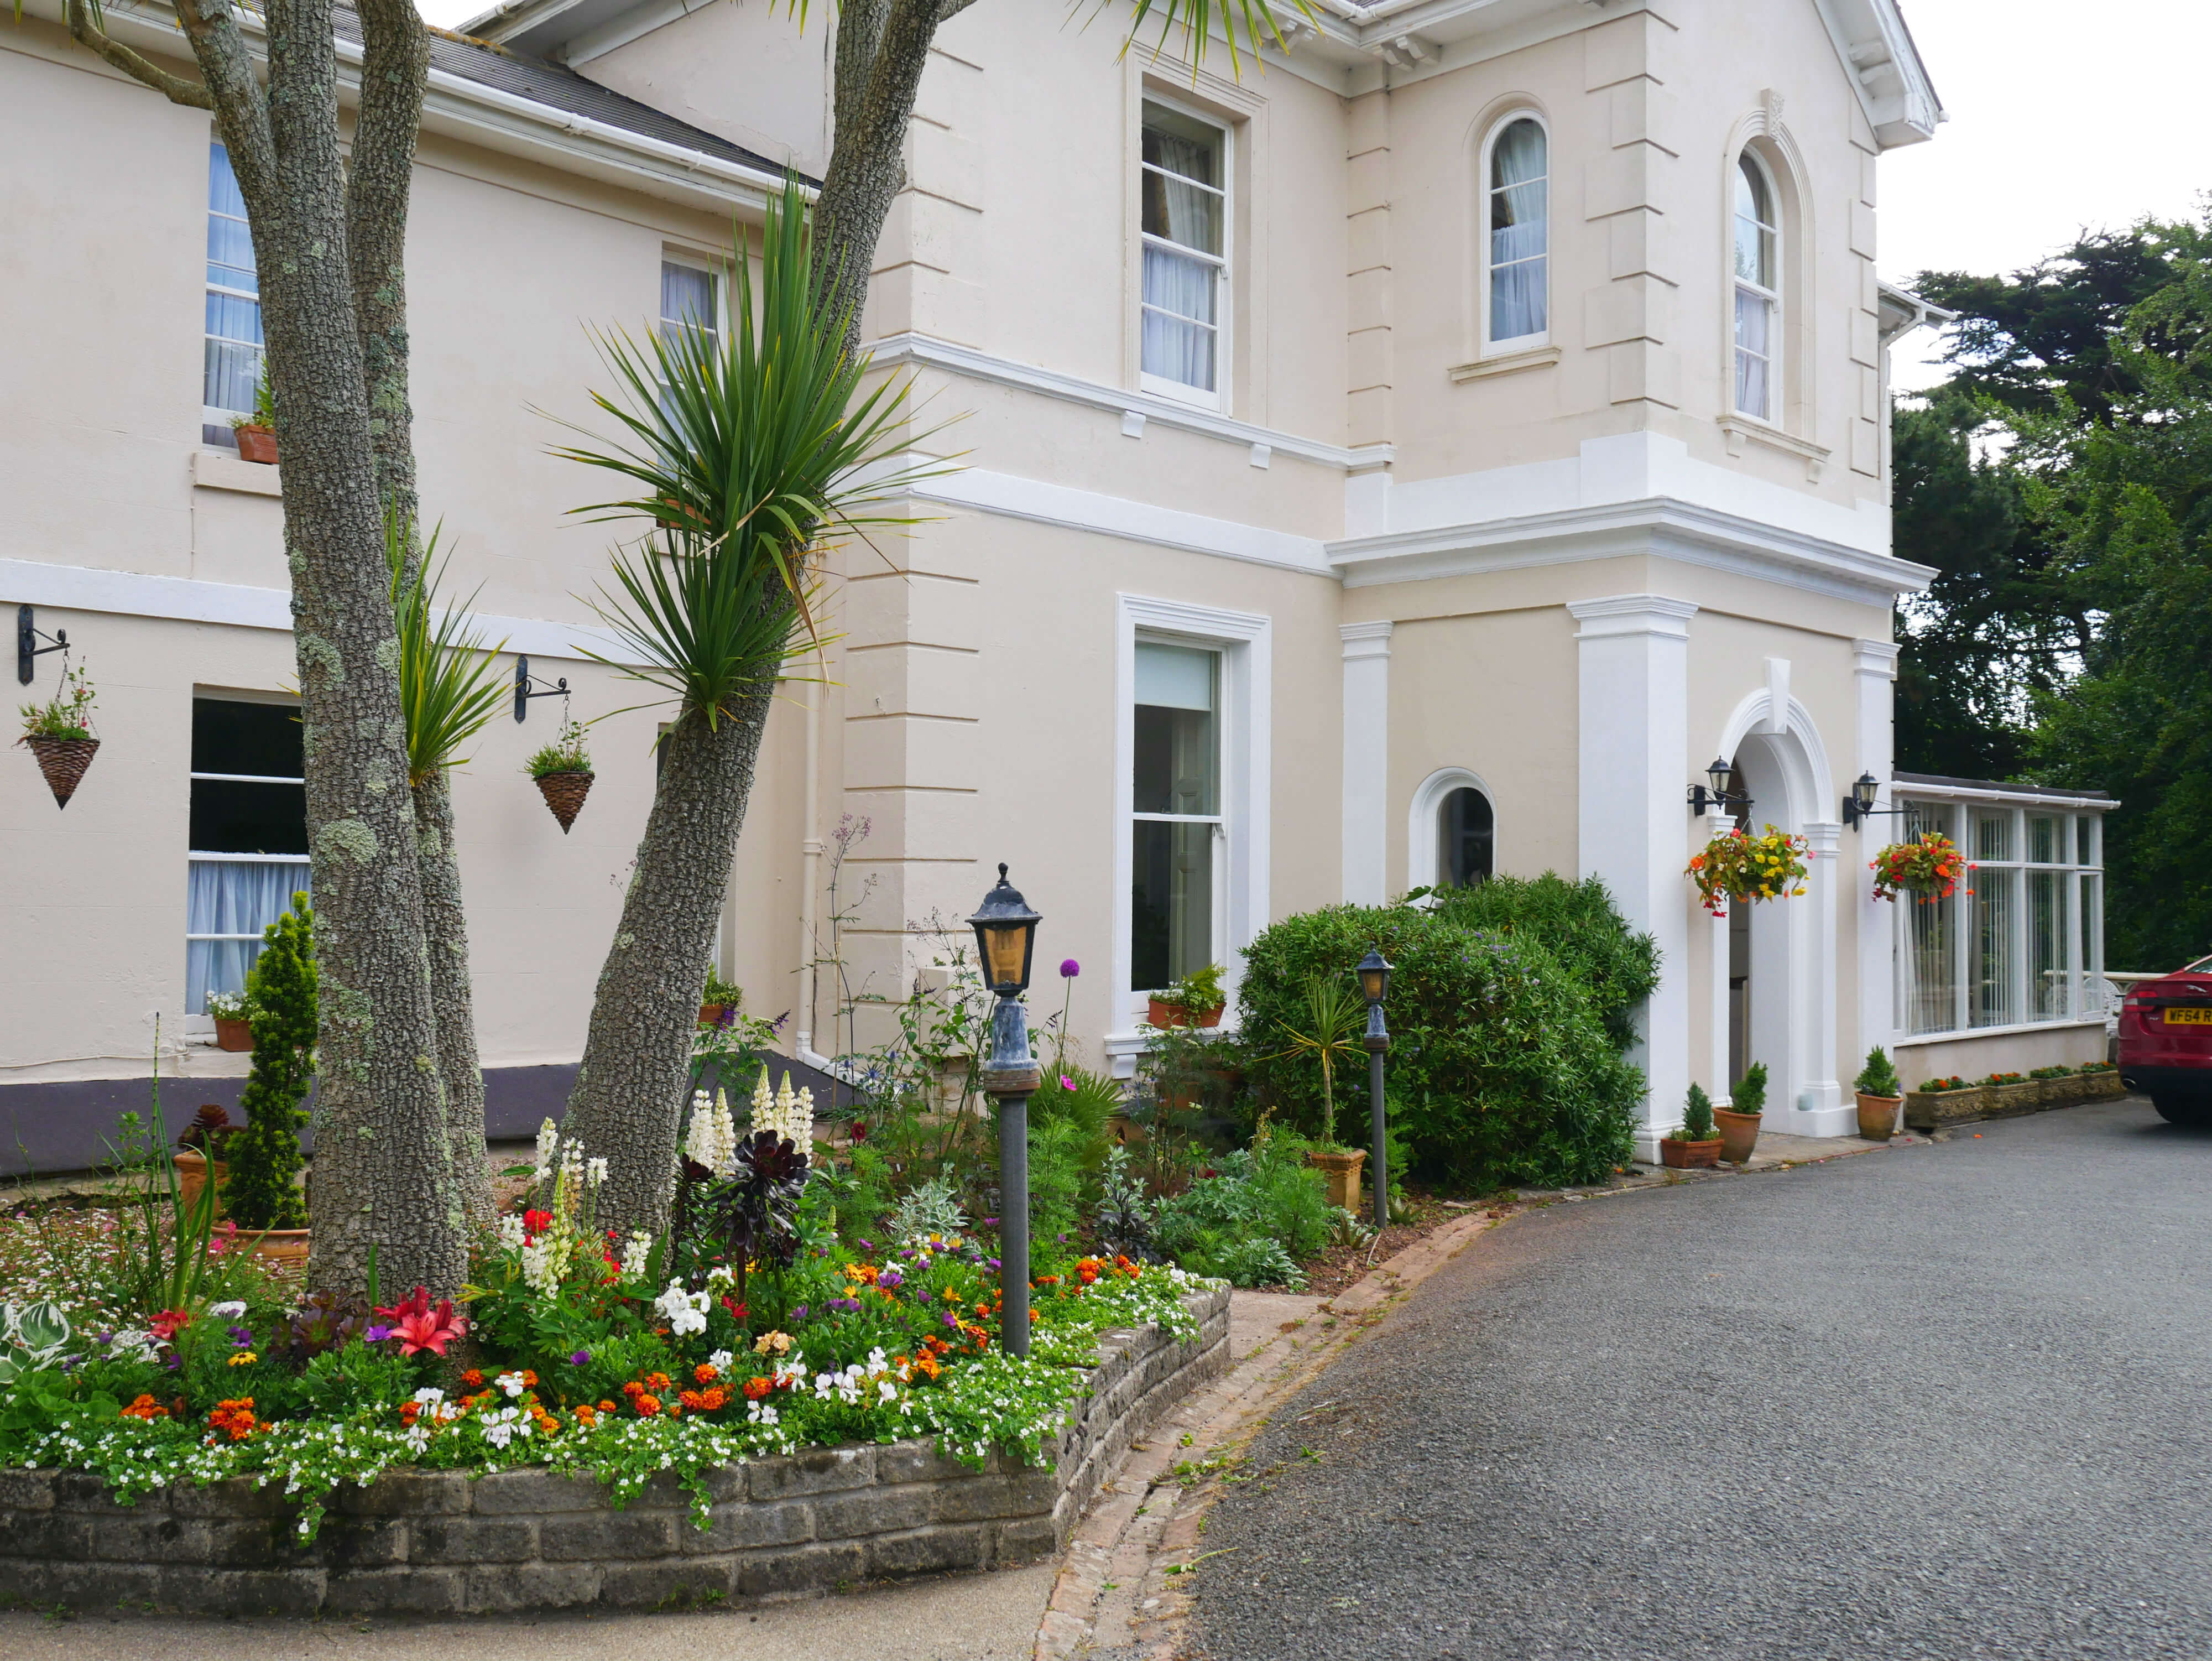 The Muntham Holiday Apartments - Dog Friendly Accommodation in Torquay.